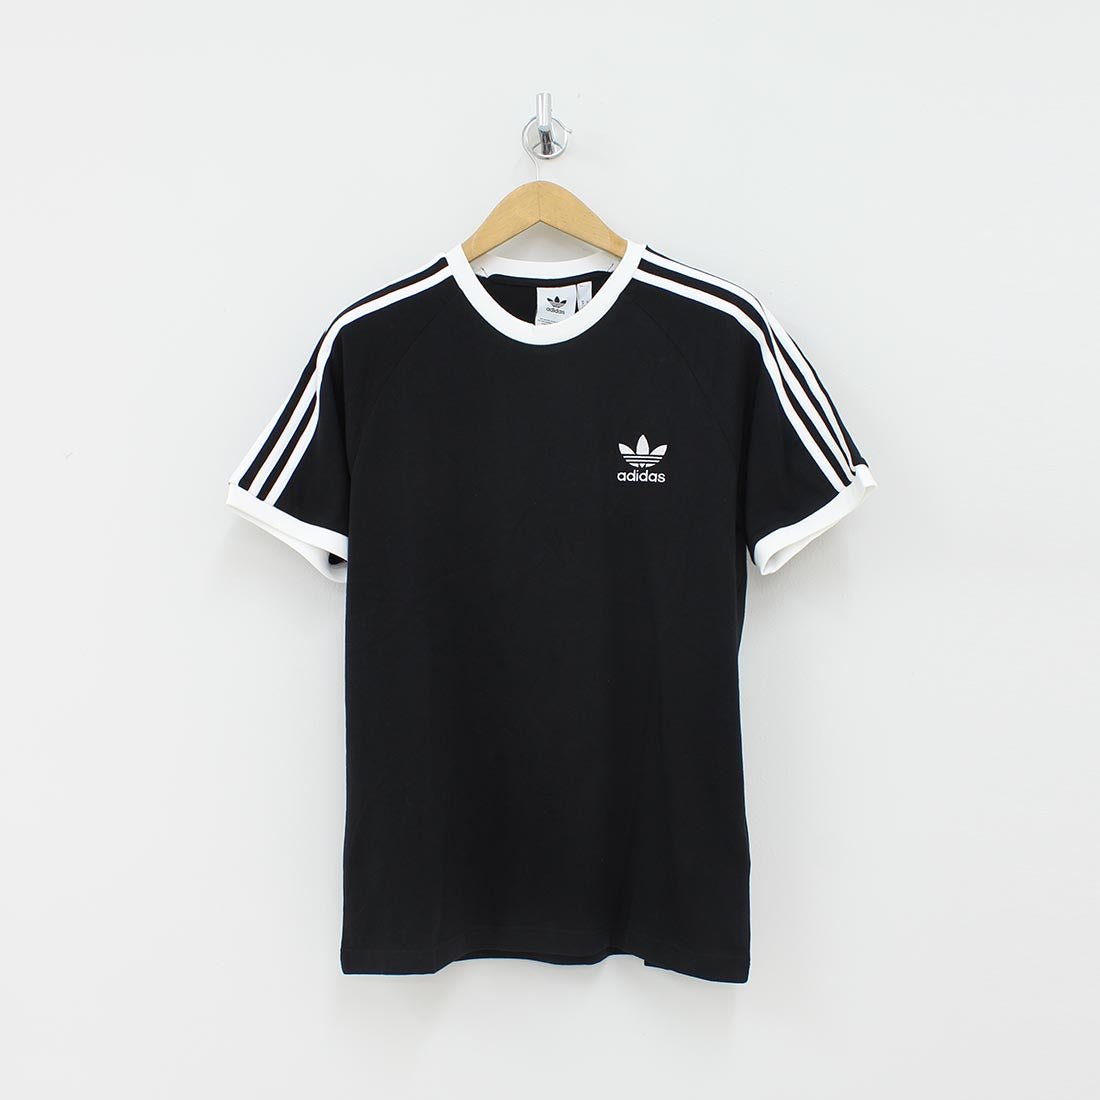 Adidas Originals Three Stripes T-Shirt Black